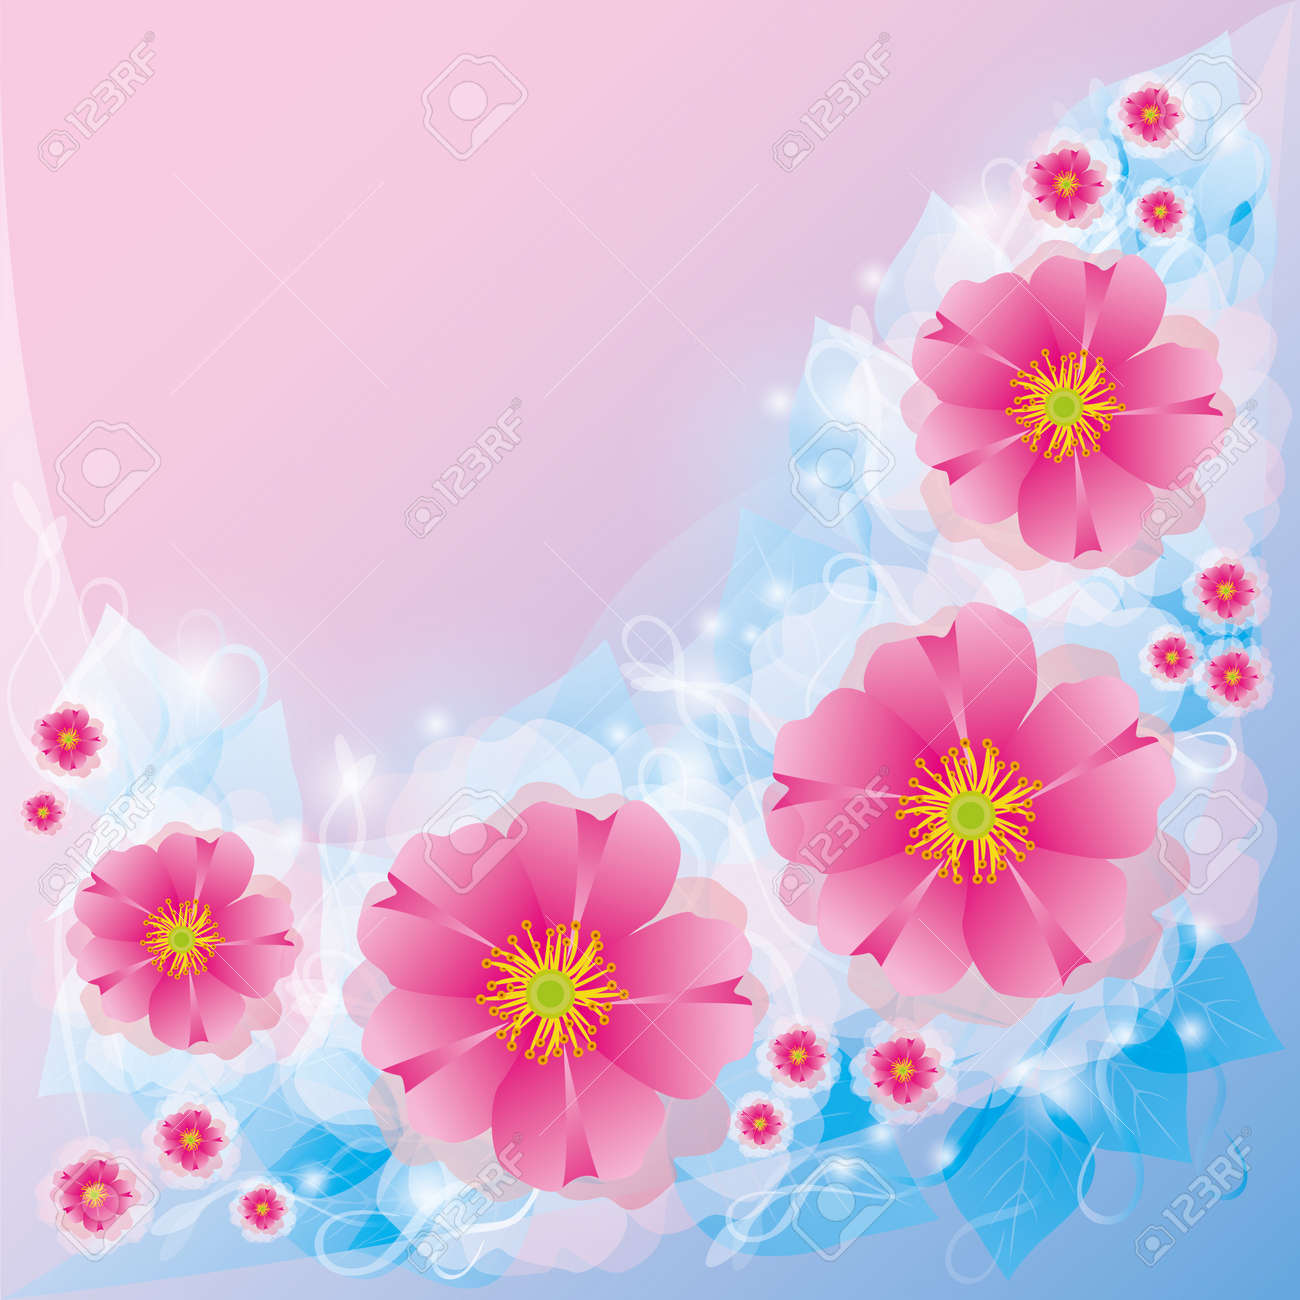 Light Floral Background With Pink Flowers Invitation Or Greeting